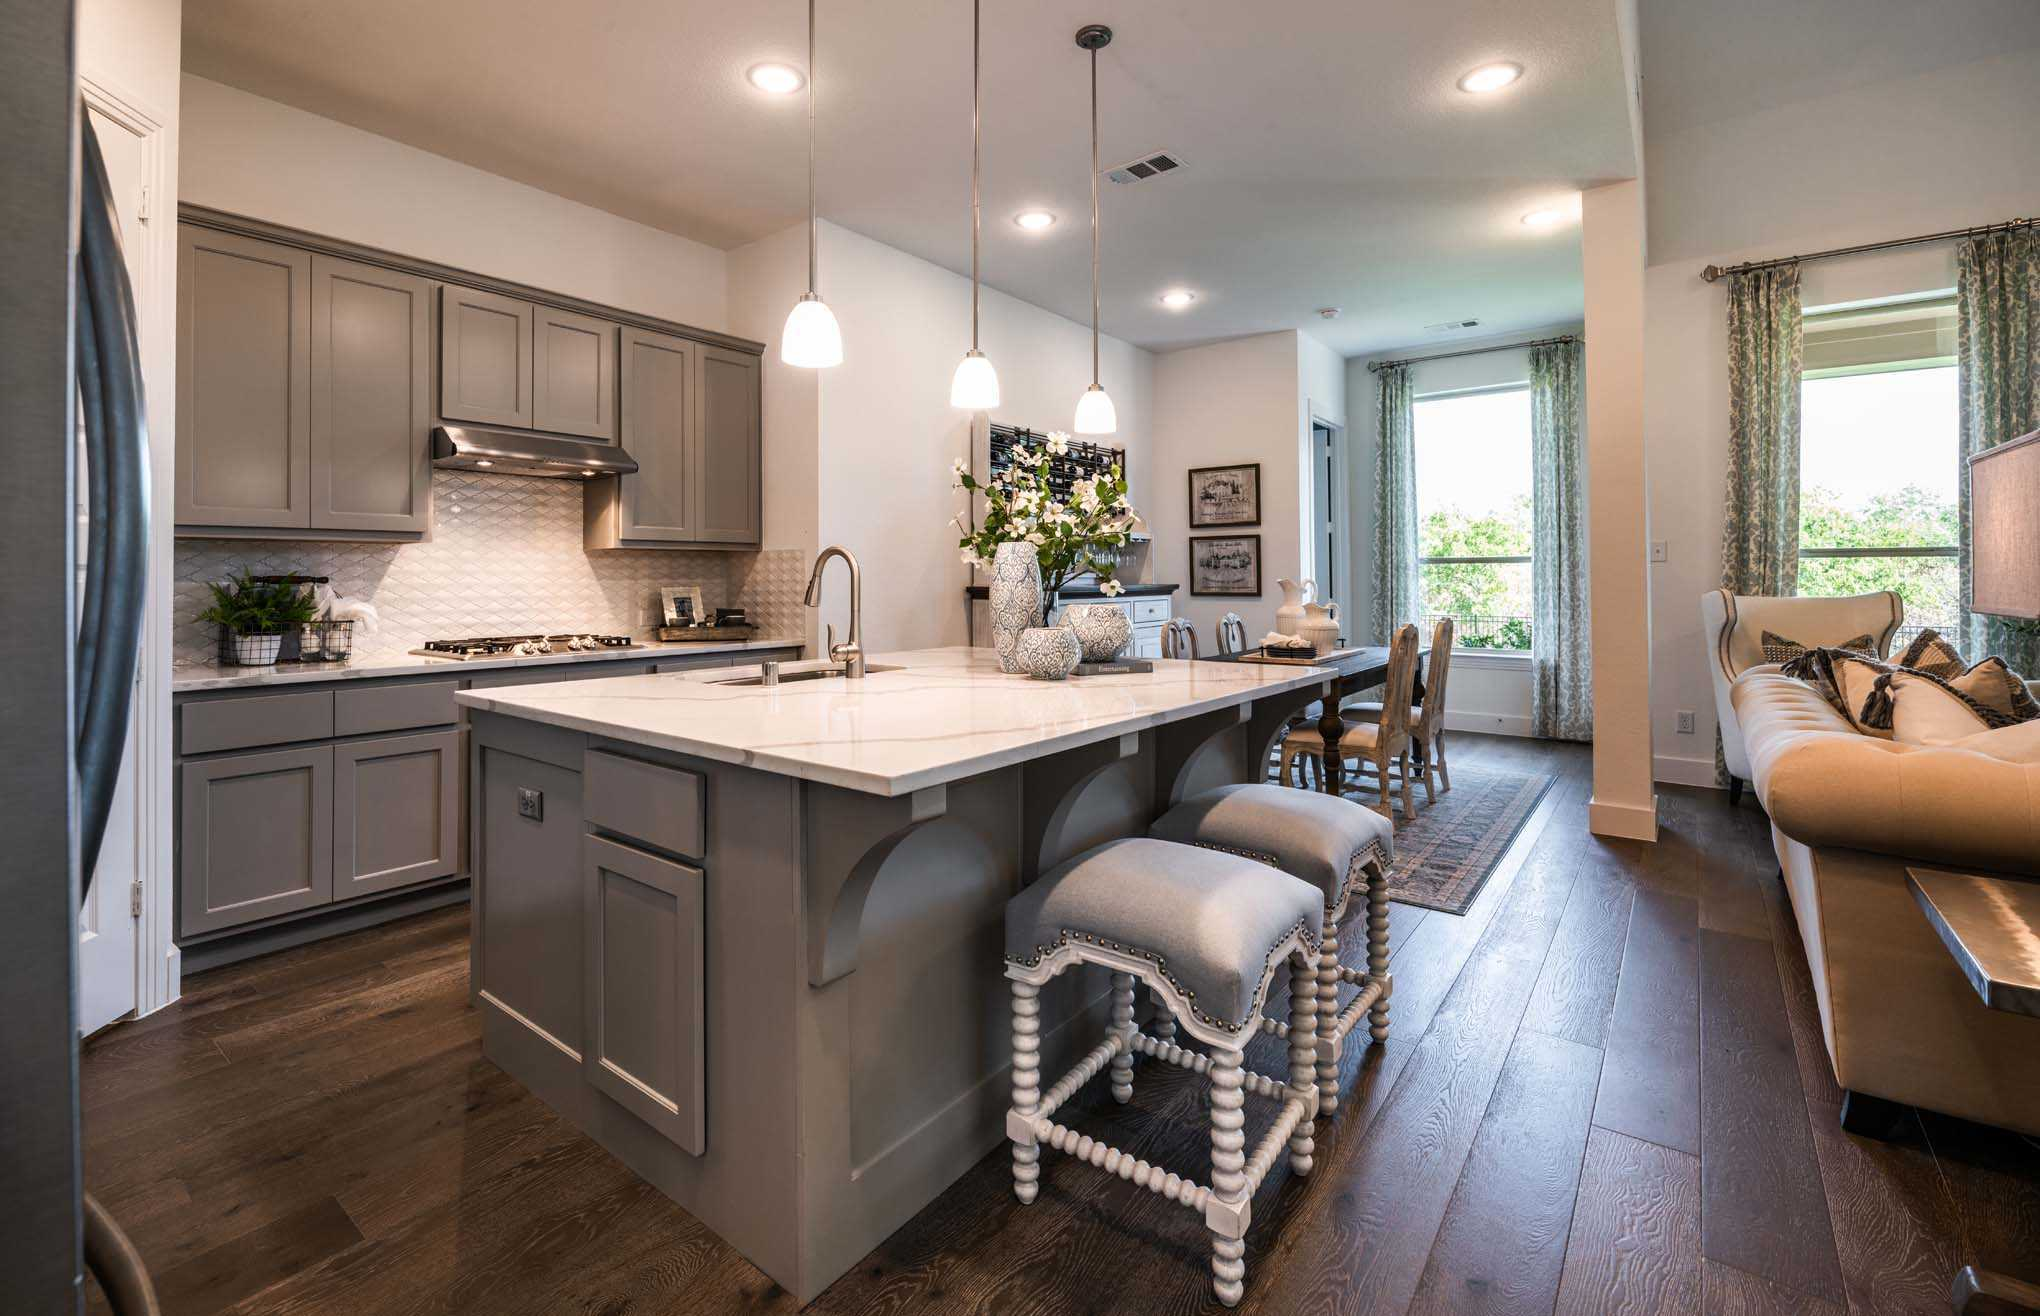 Kitchen featured in the Plan Waverley By Highland Homes in Houston, TX